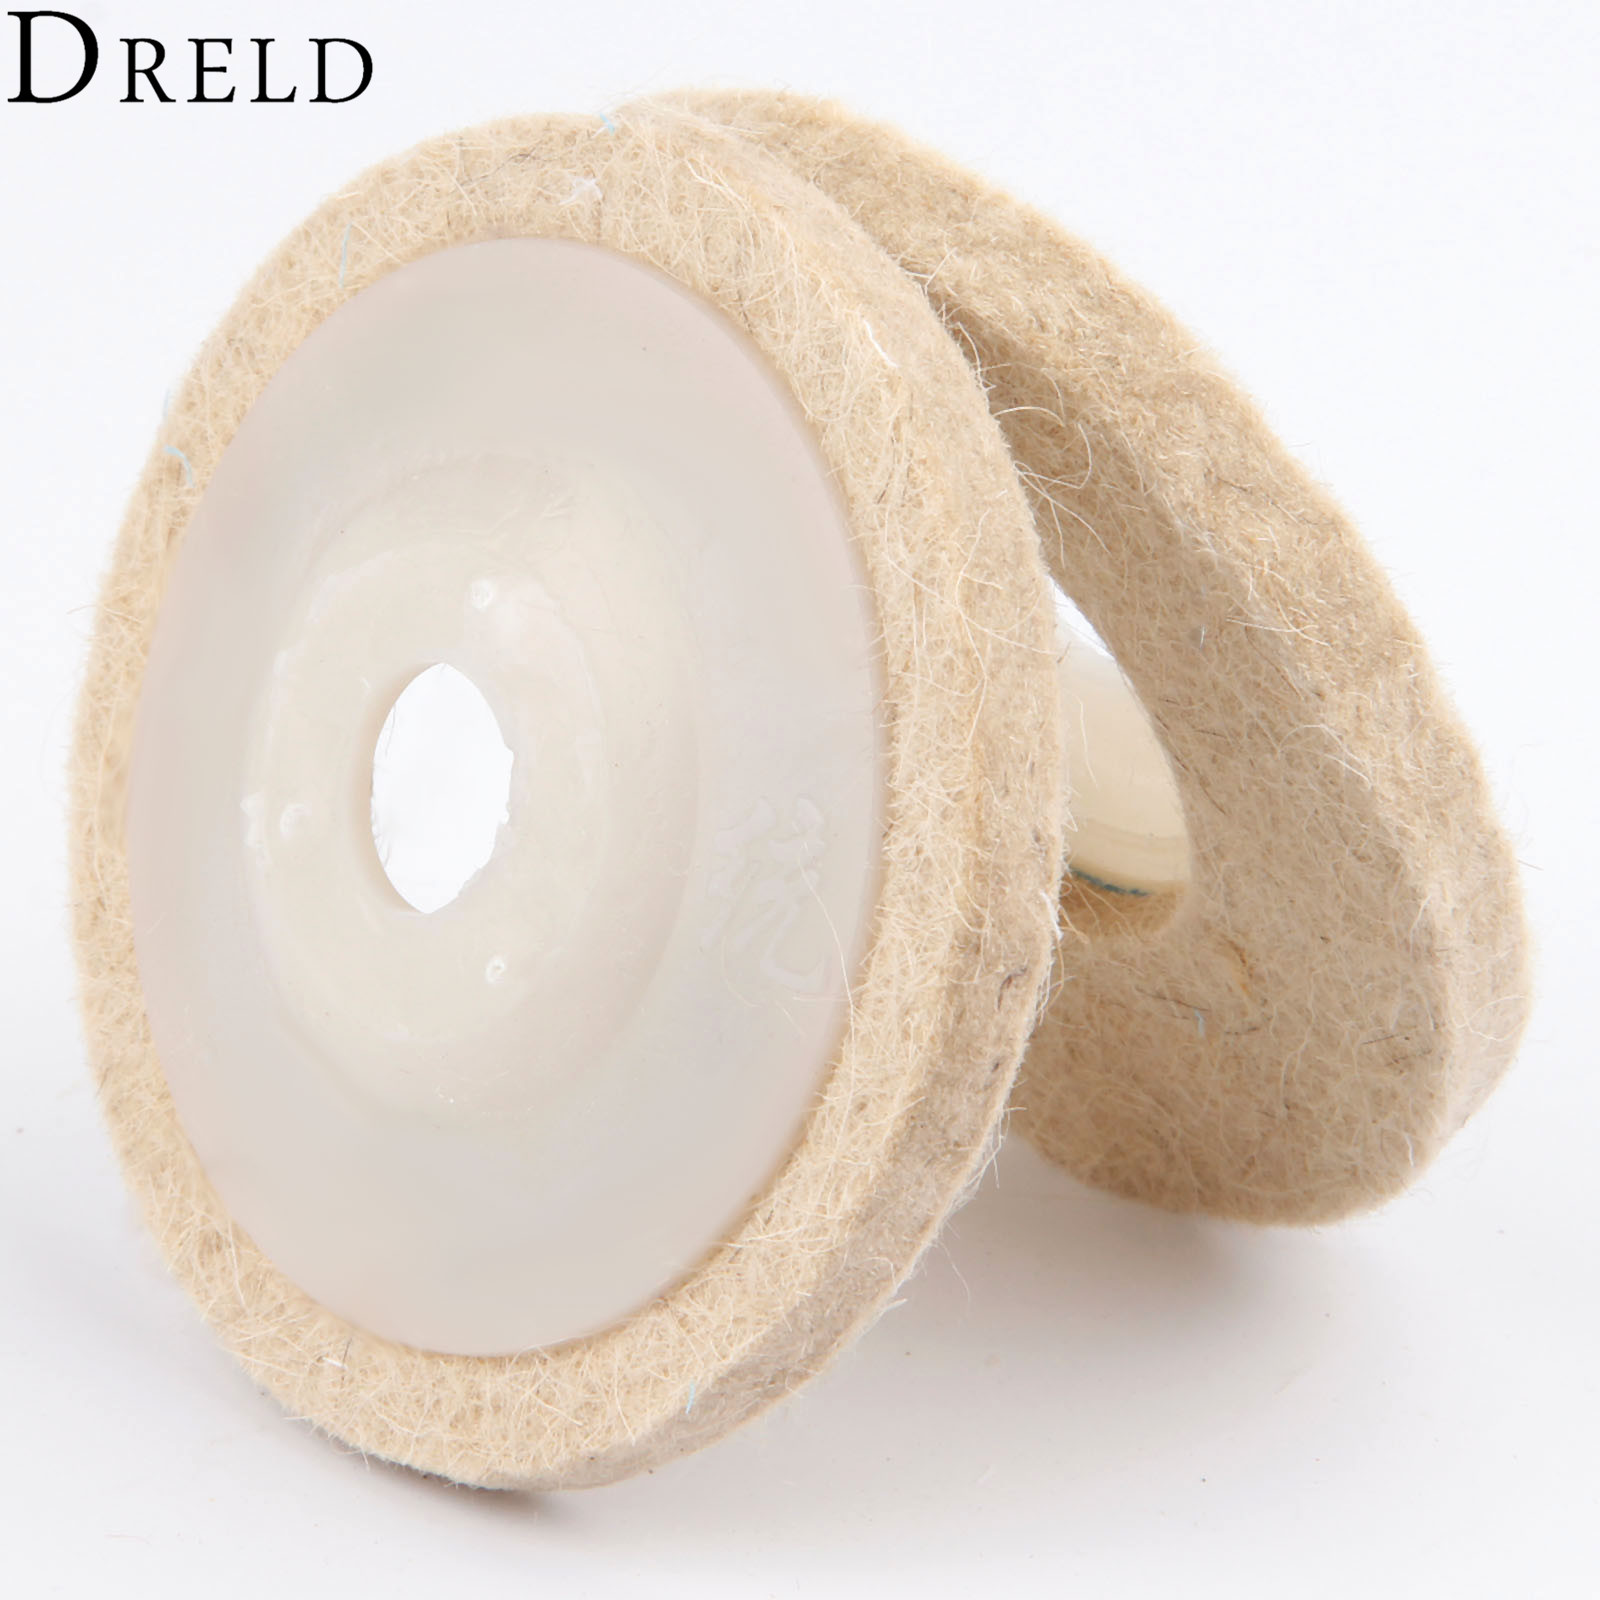 DRELD 80mm/3inch Dremel Accessories Polishing Pad Wool Felt Buffing Wheel Grinding Pad Polisher Disc For Metal Marble Ceramics